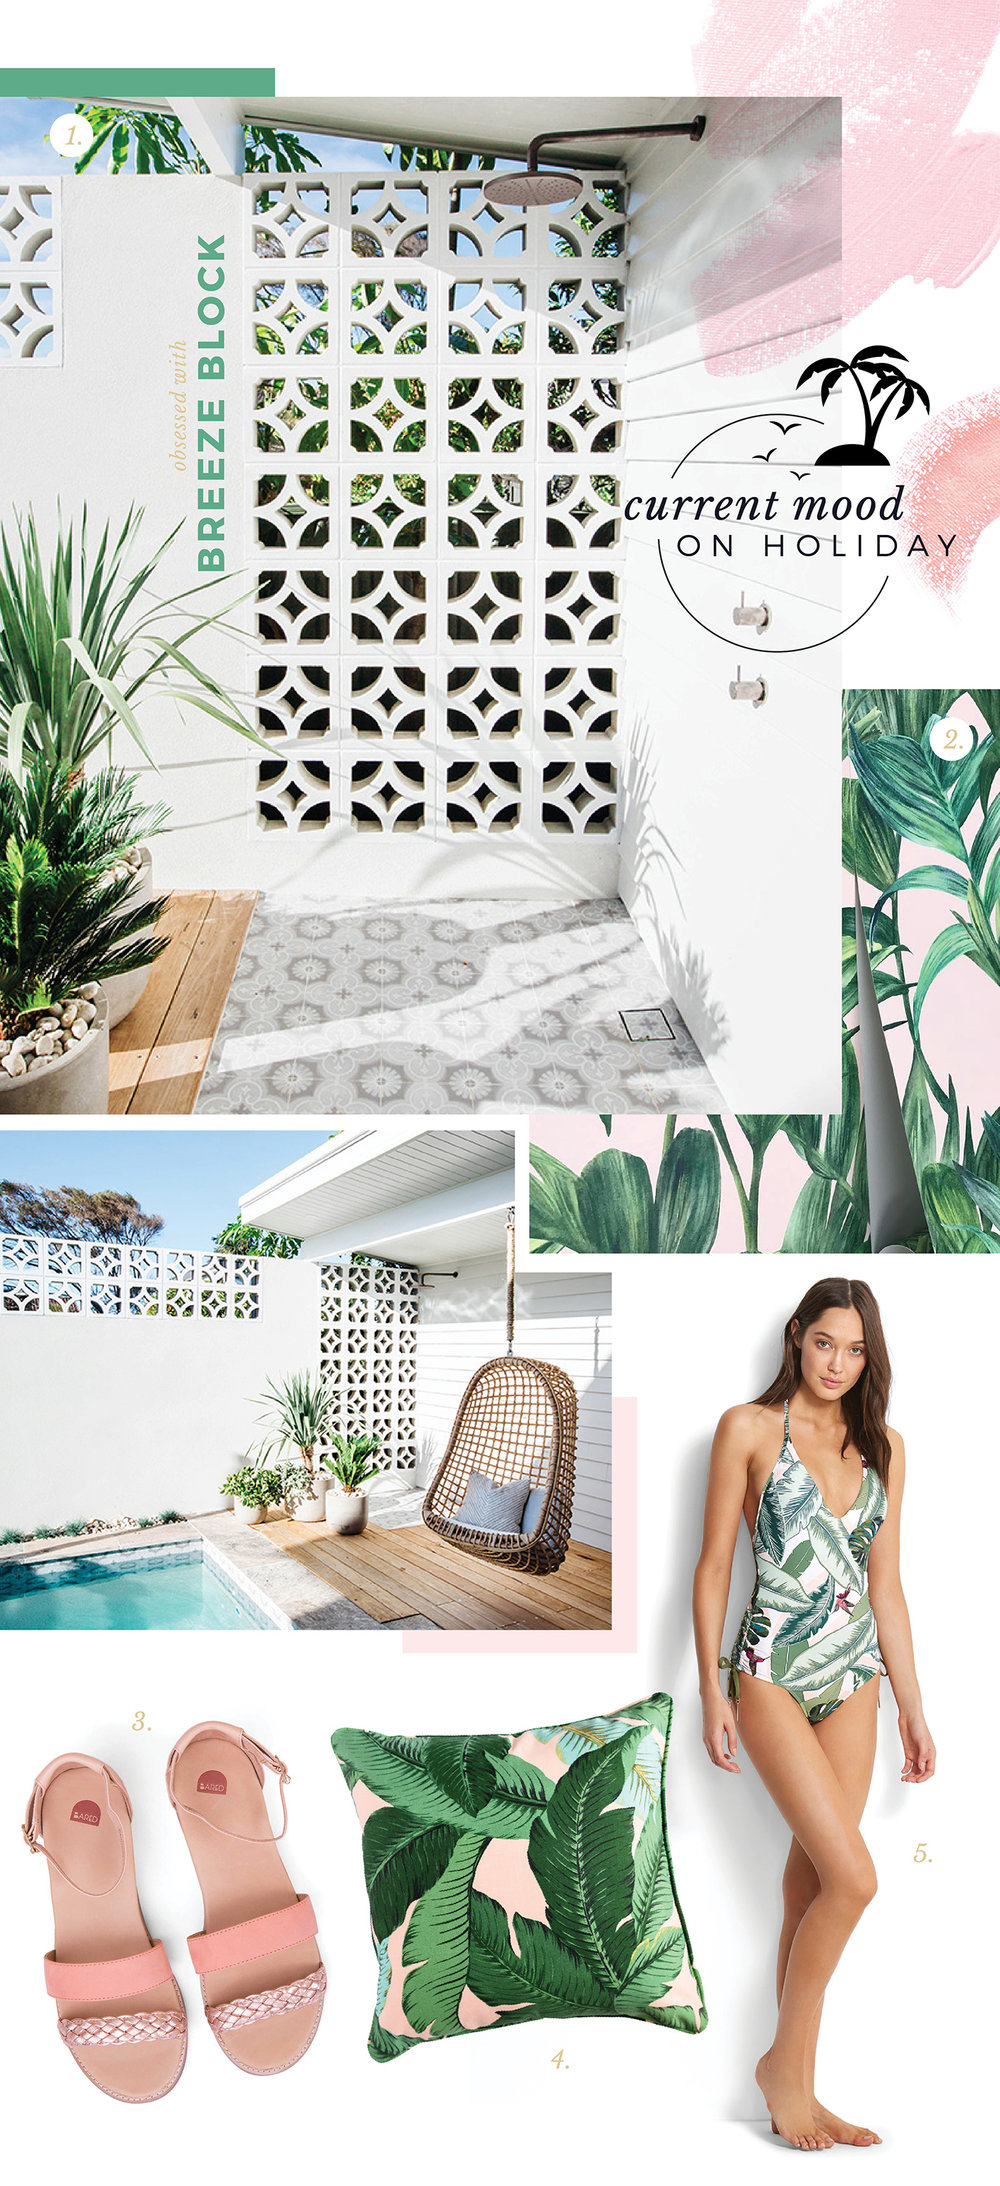 breeze_block_palm_springs_holiday_style_kyalandkara_outdoor_space_green_palm_print_beach_pink.jpg